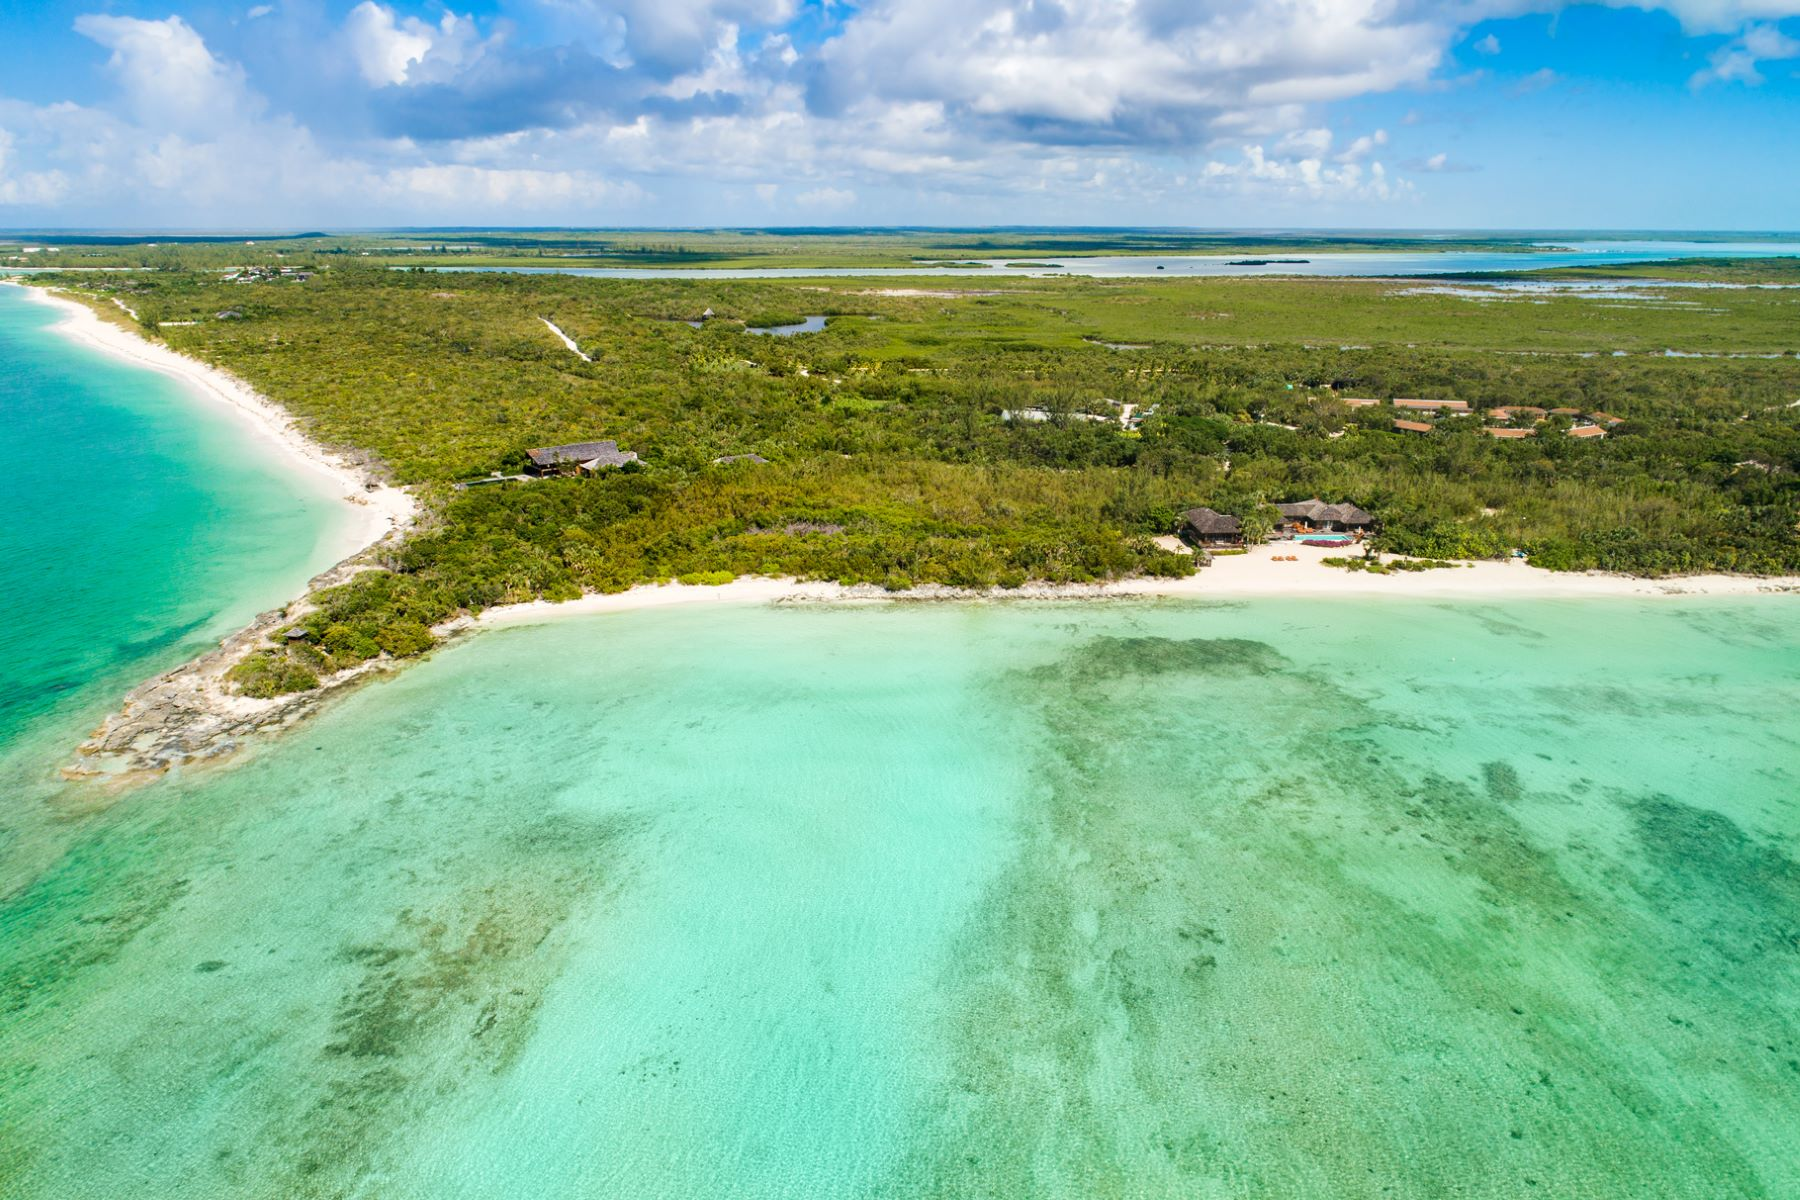 Additional photo for property listing at Parrot Cay Estate Beachfront Lot 118 Parrot Cay Beachfront Estate Parrot Cay, Parrot Cay TKCA 1ZZ Turks And Caicos Islands